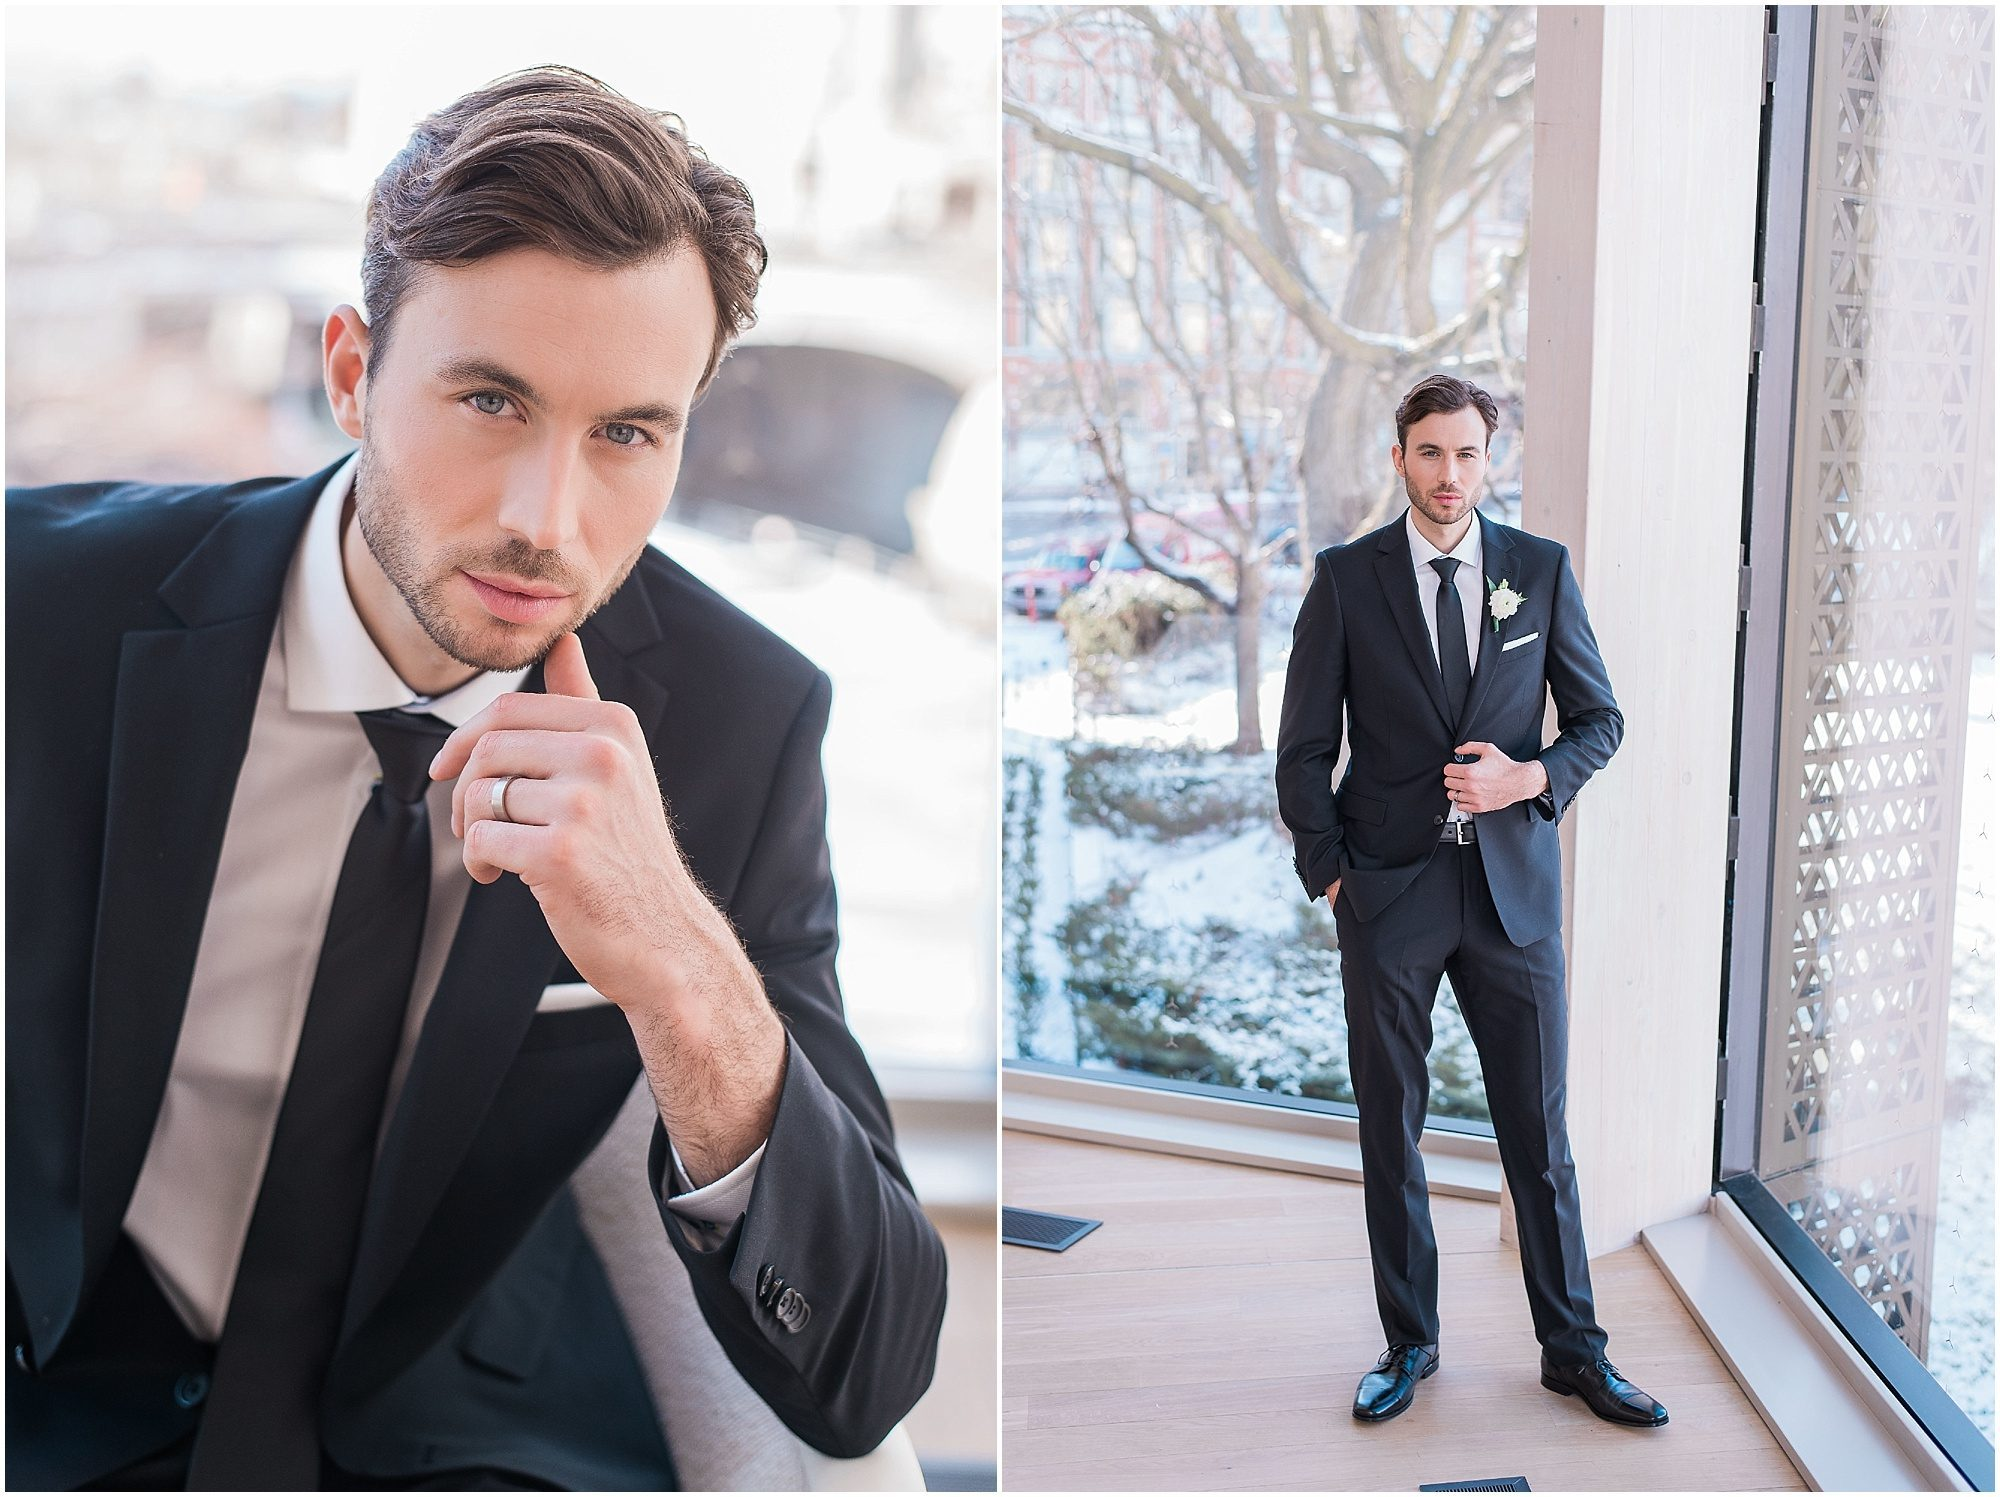 Wedding O'Born Room NAC Ottawa - New Years Glam Wedding Inspiration - groom in black tux